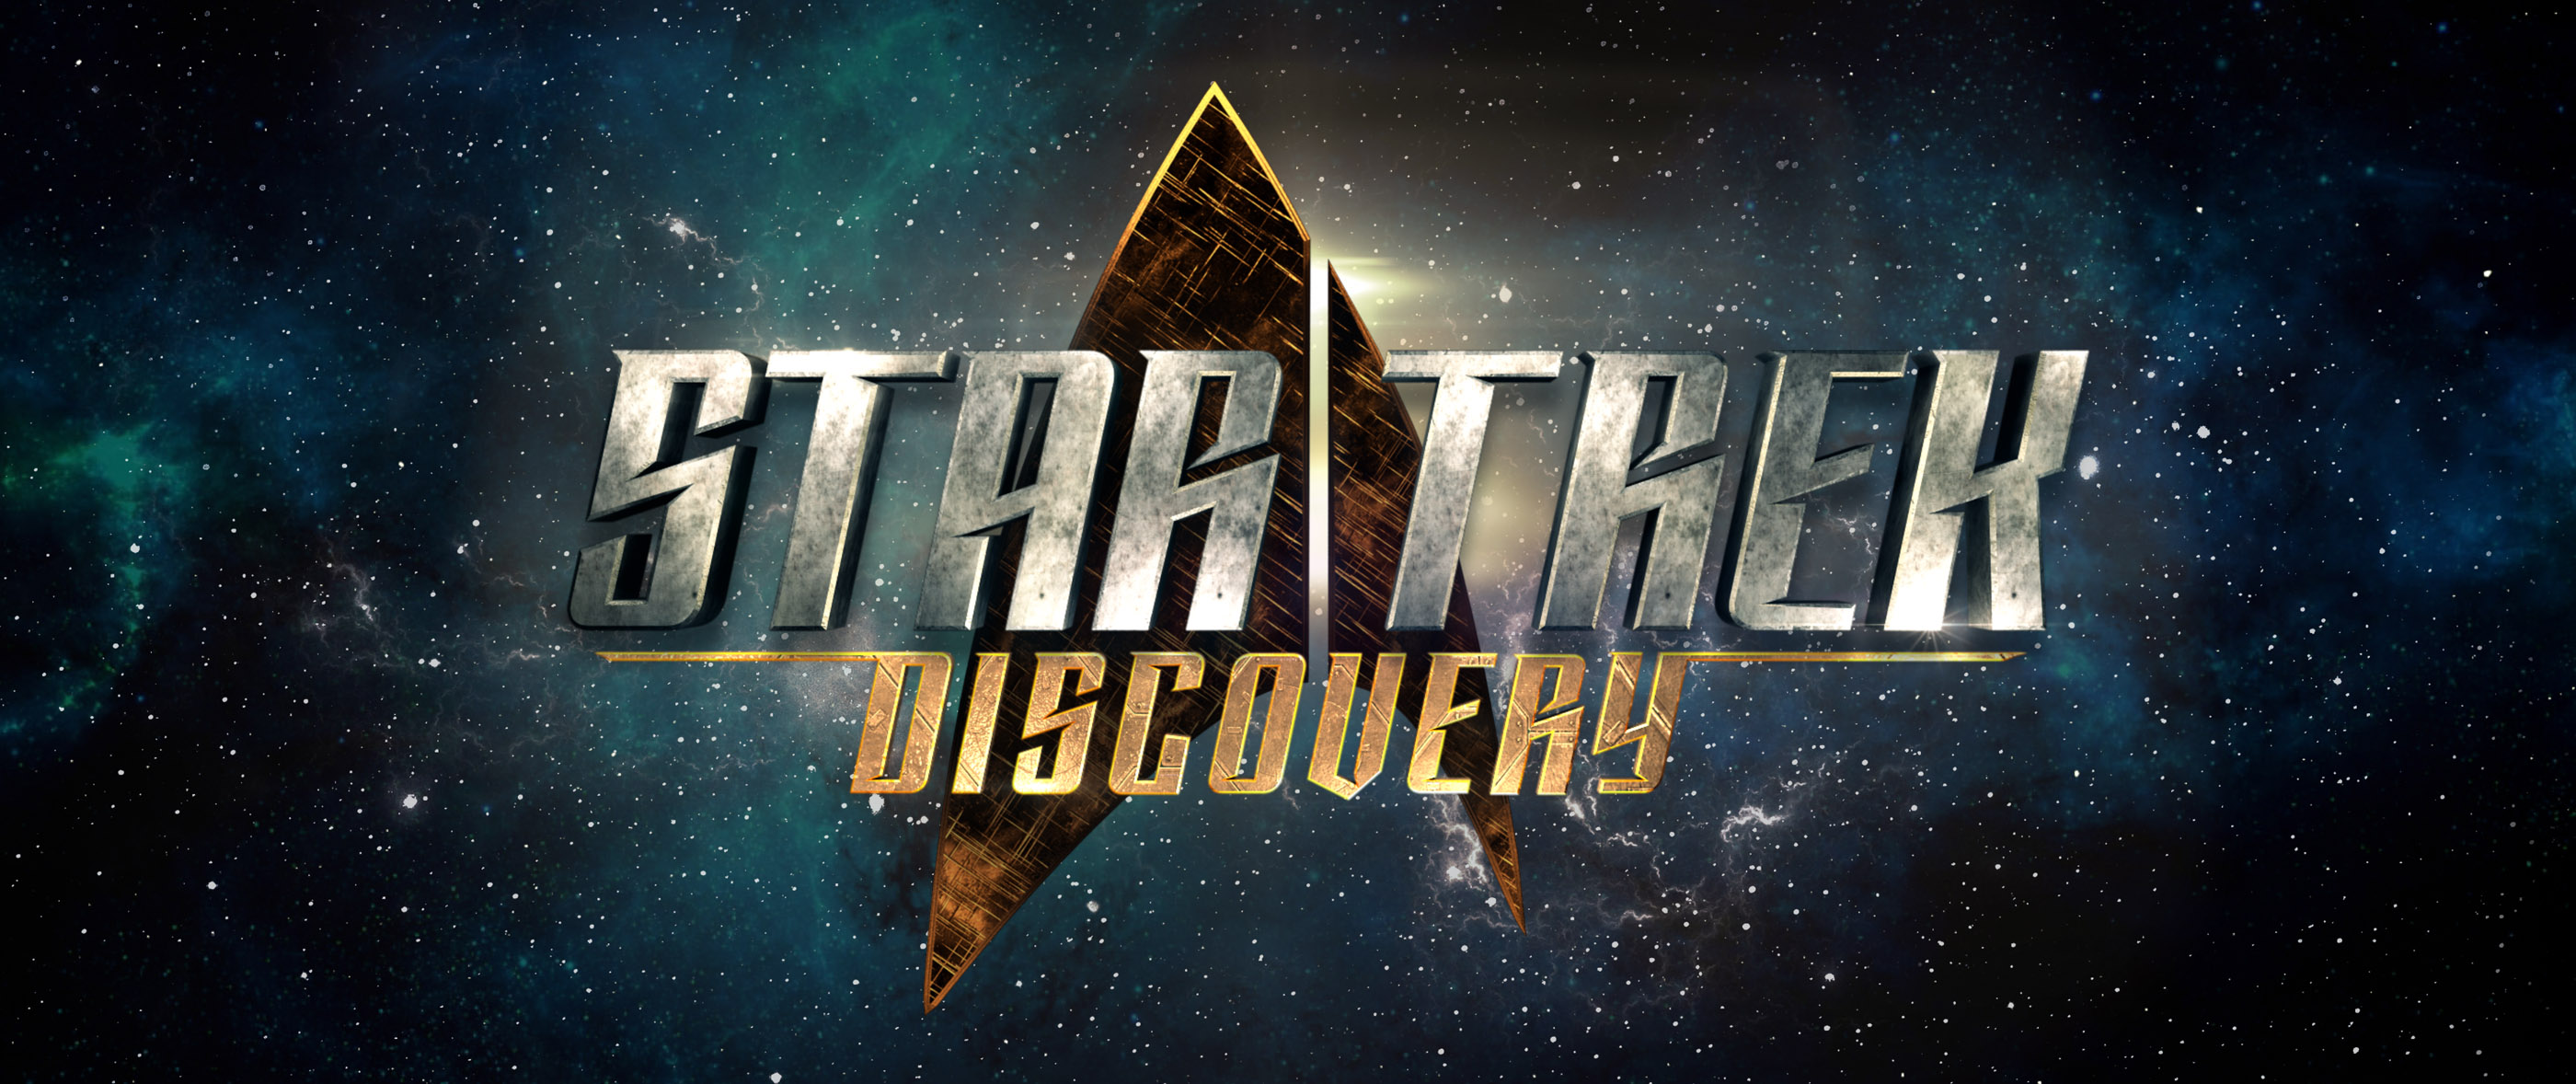 discovery logo